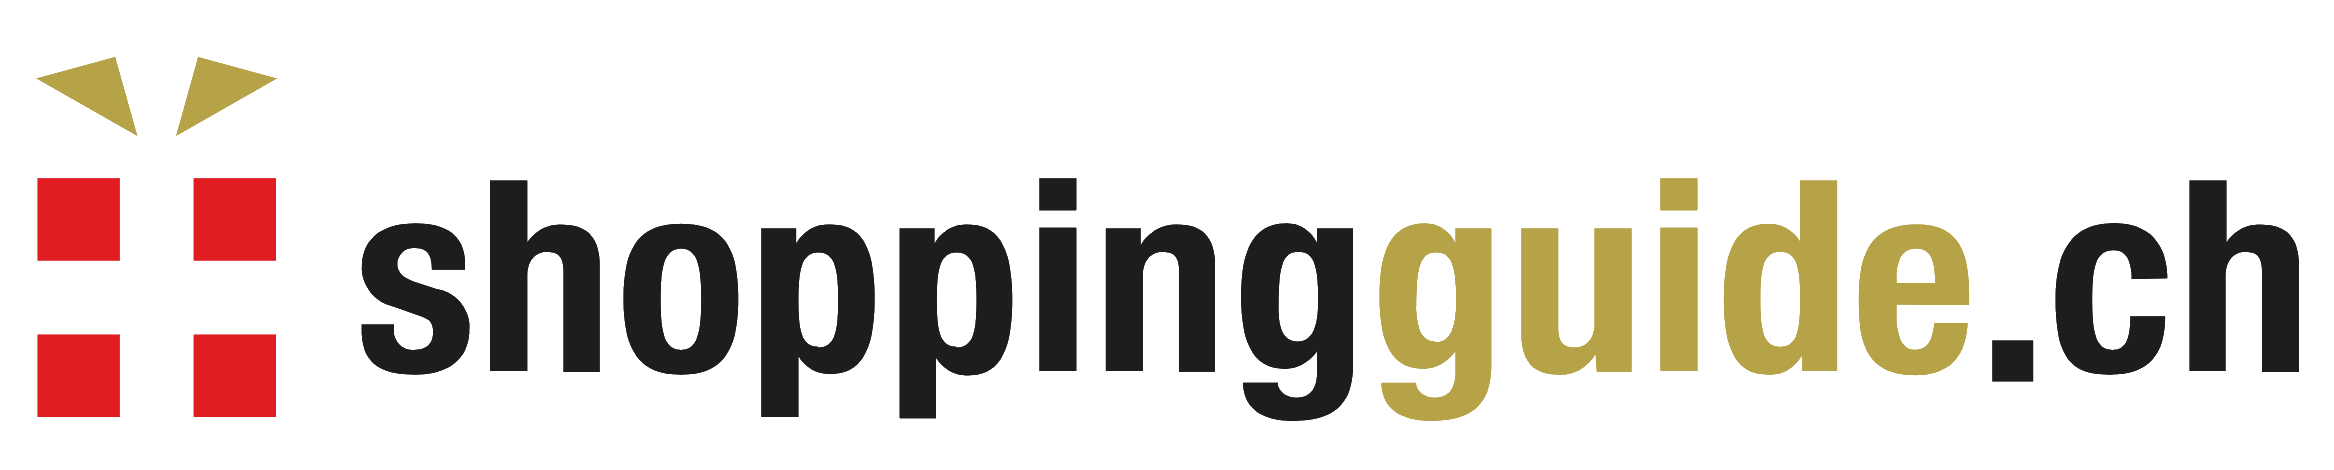 Shoppingguide 2019